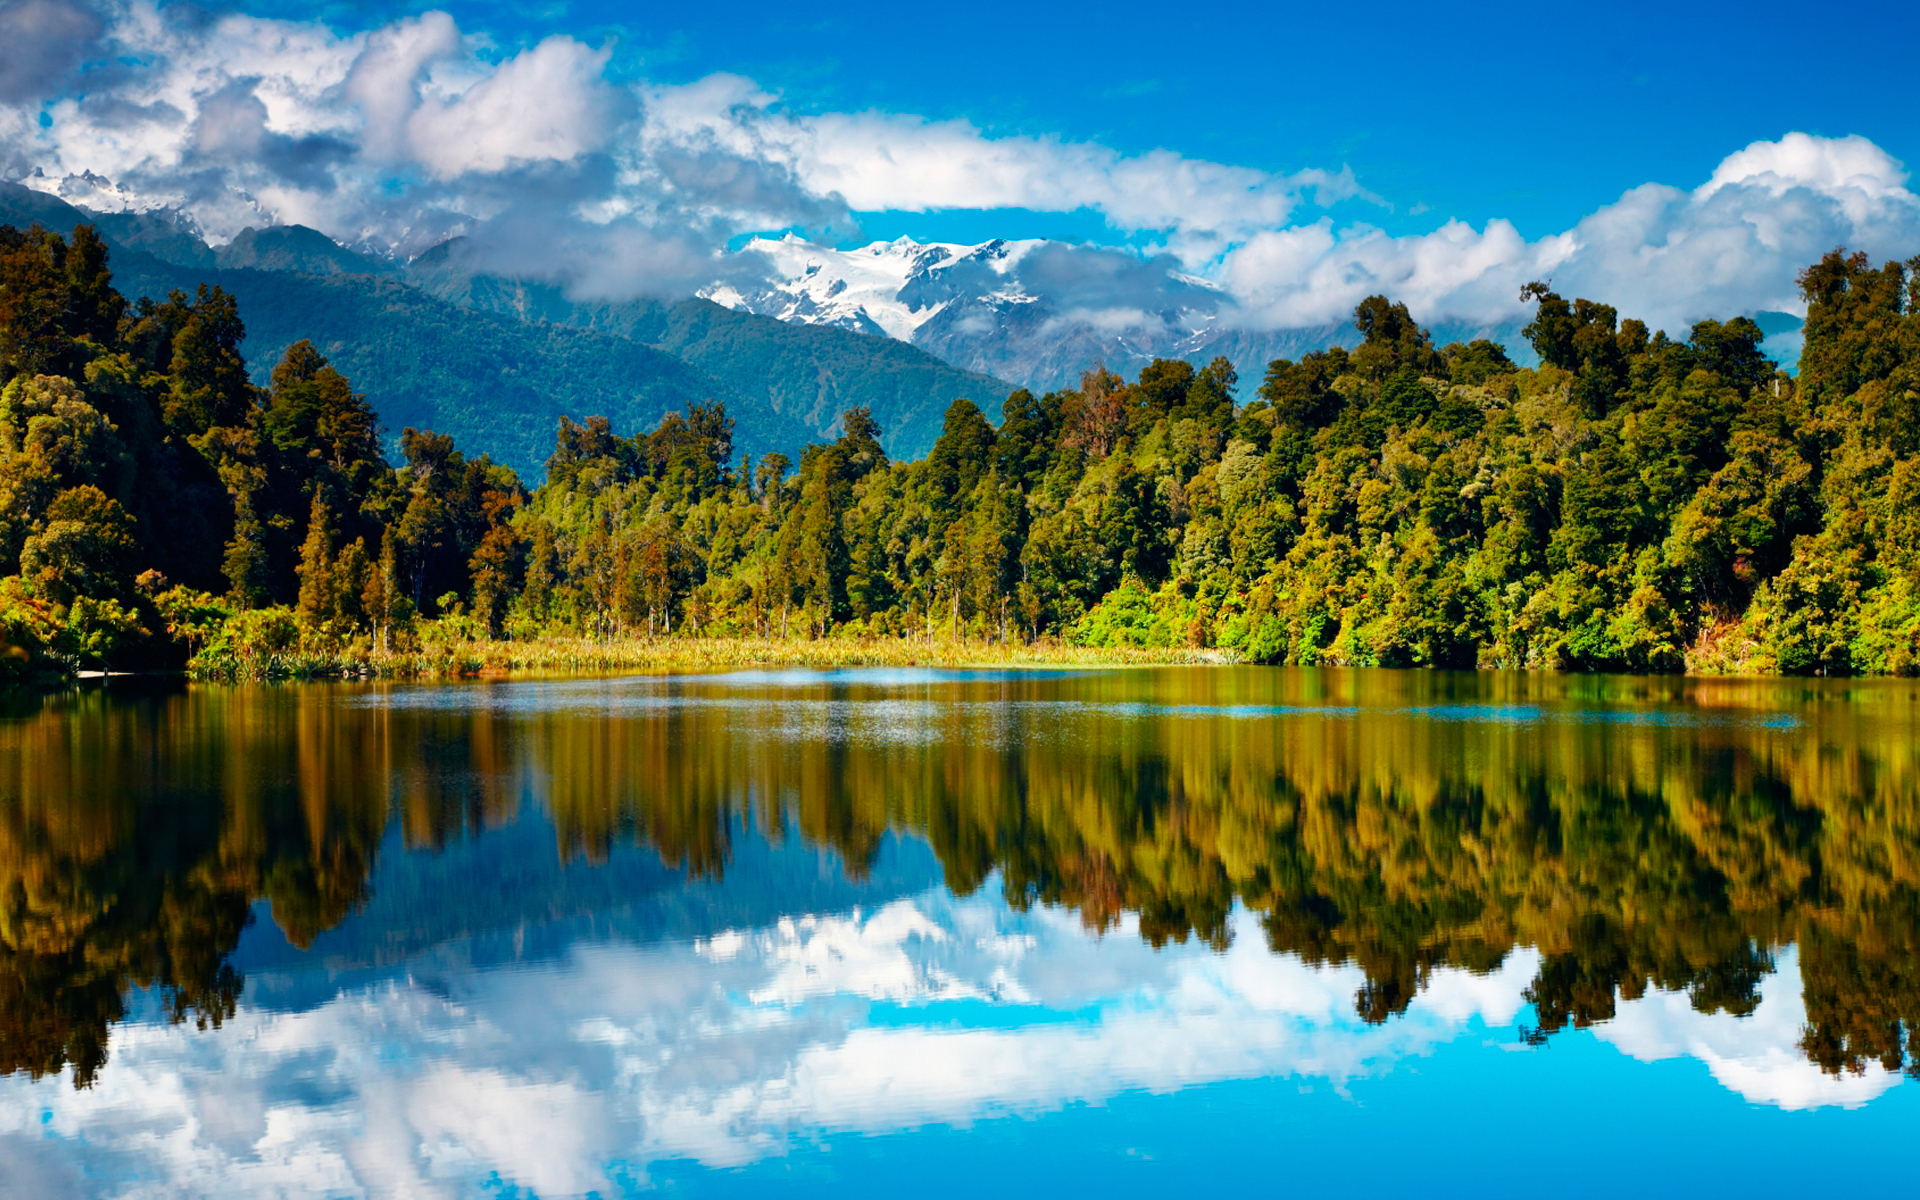 Picturesque New Zealand